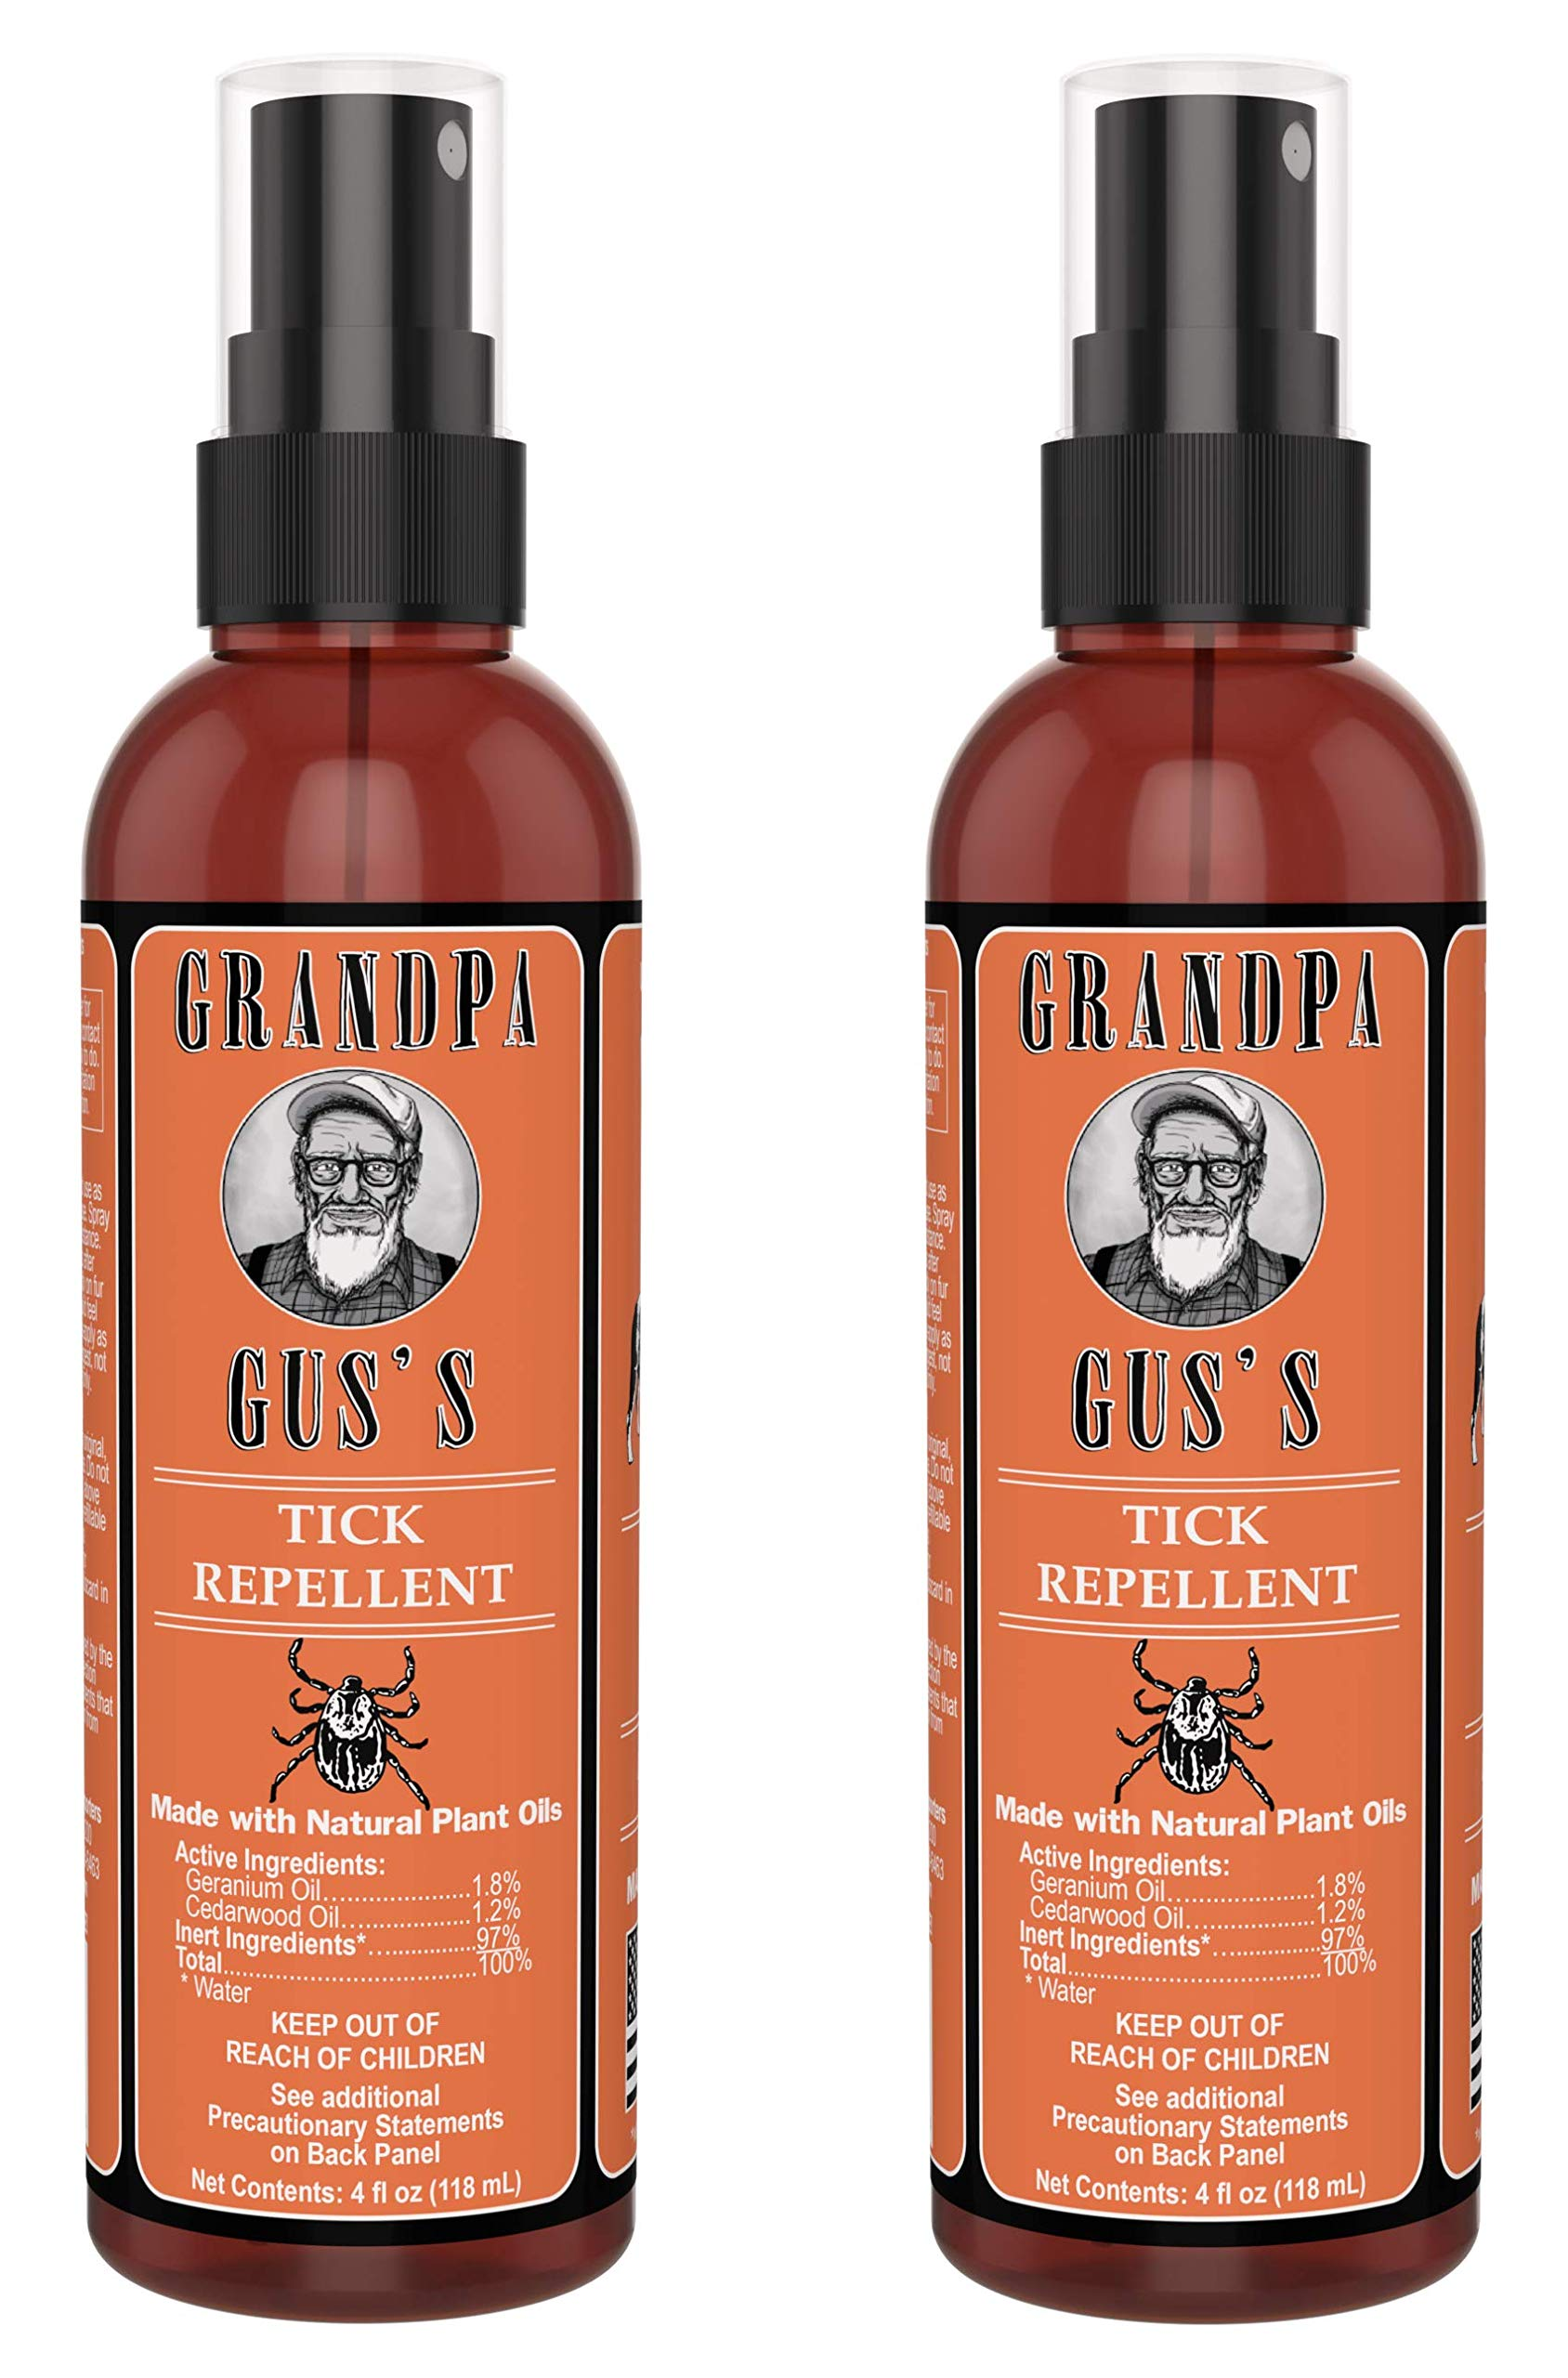 Grandpa Gus's All-Natural Tick Repellent Made With Geraniol/Cedarwood Oils, Safe To Spray On Humans and Pets, No Burn/Skin Irritations, Citrus Smell Lasts For Hours, 4oz Traveling Bottles (Pack of 2)